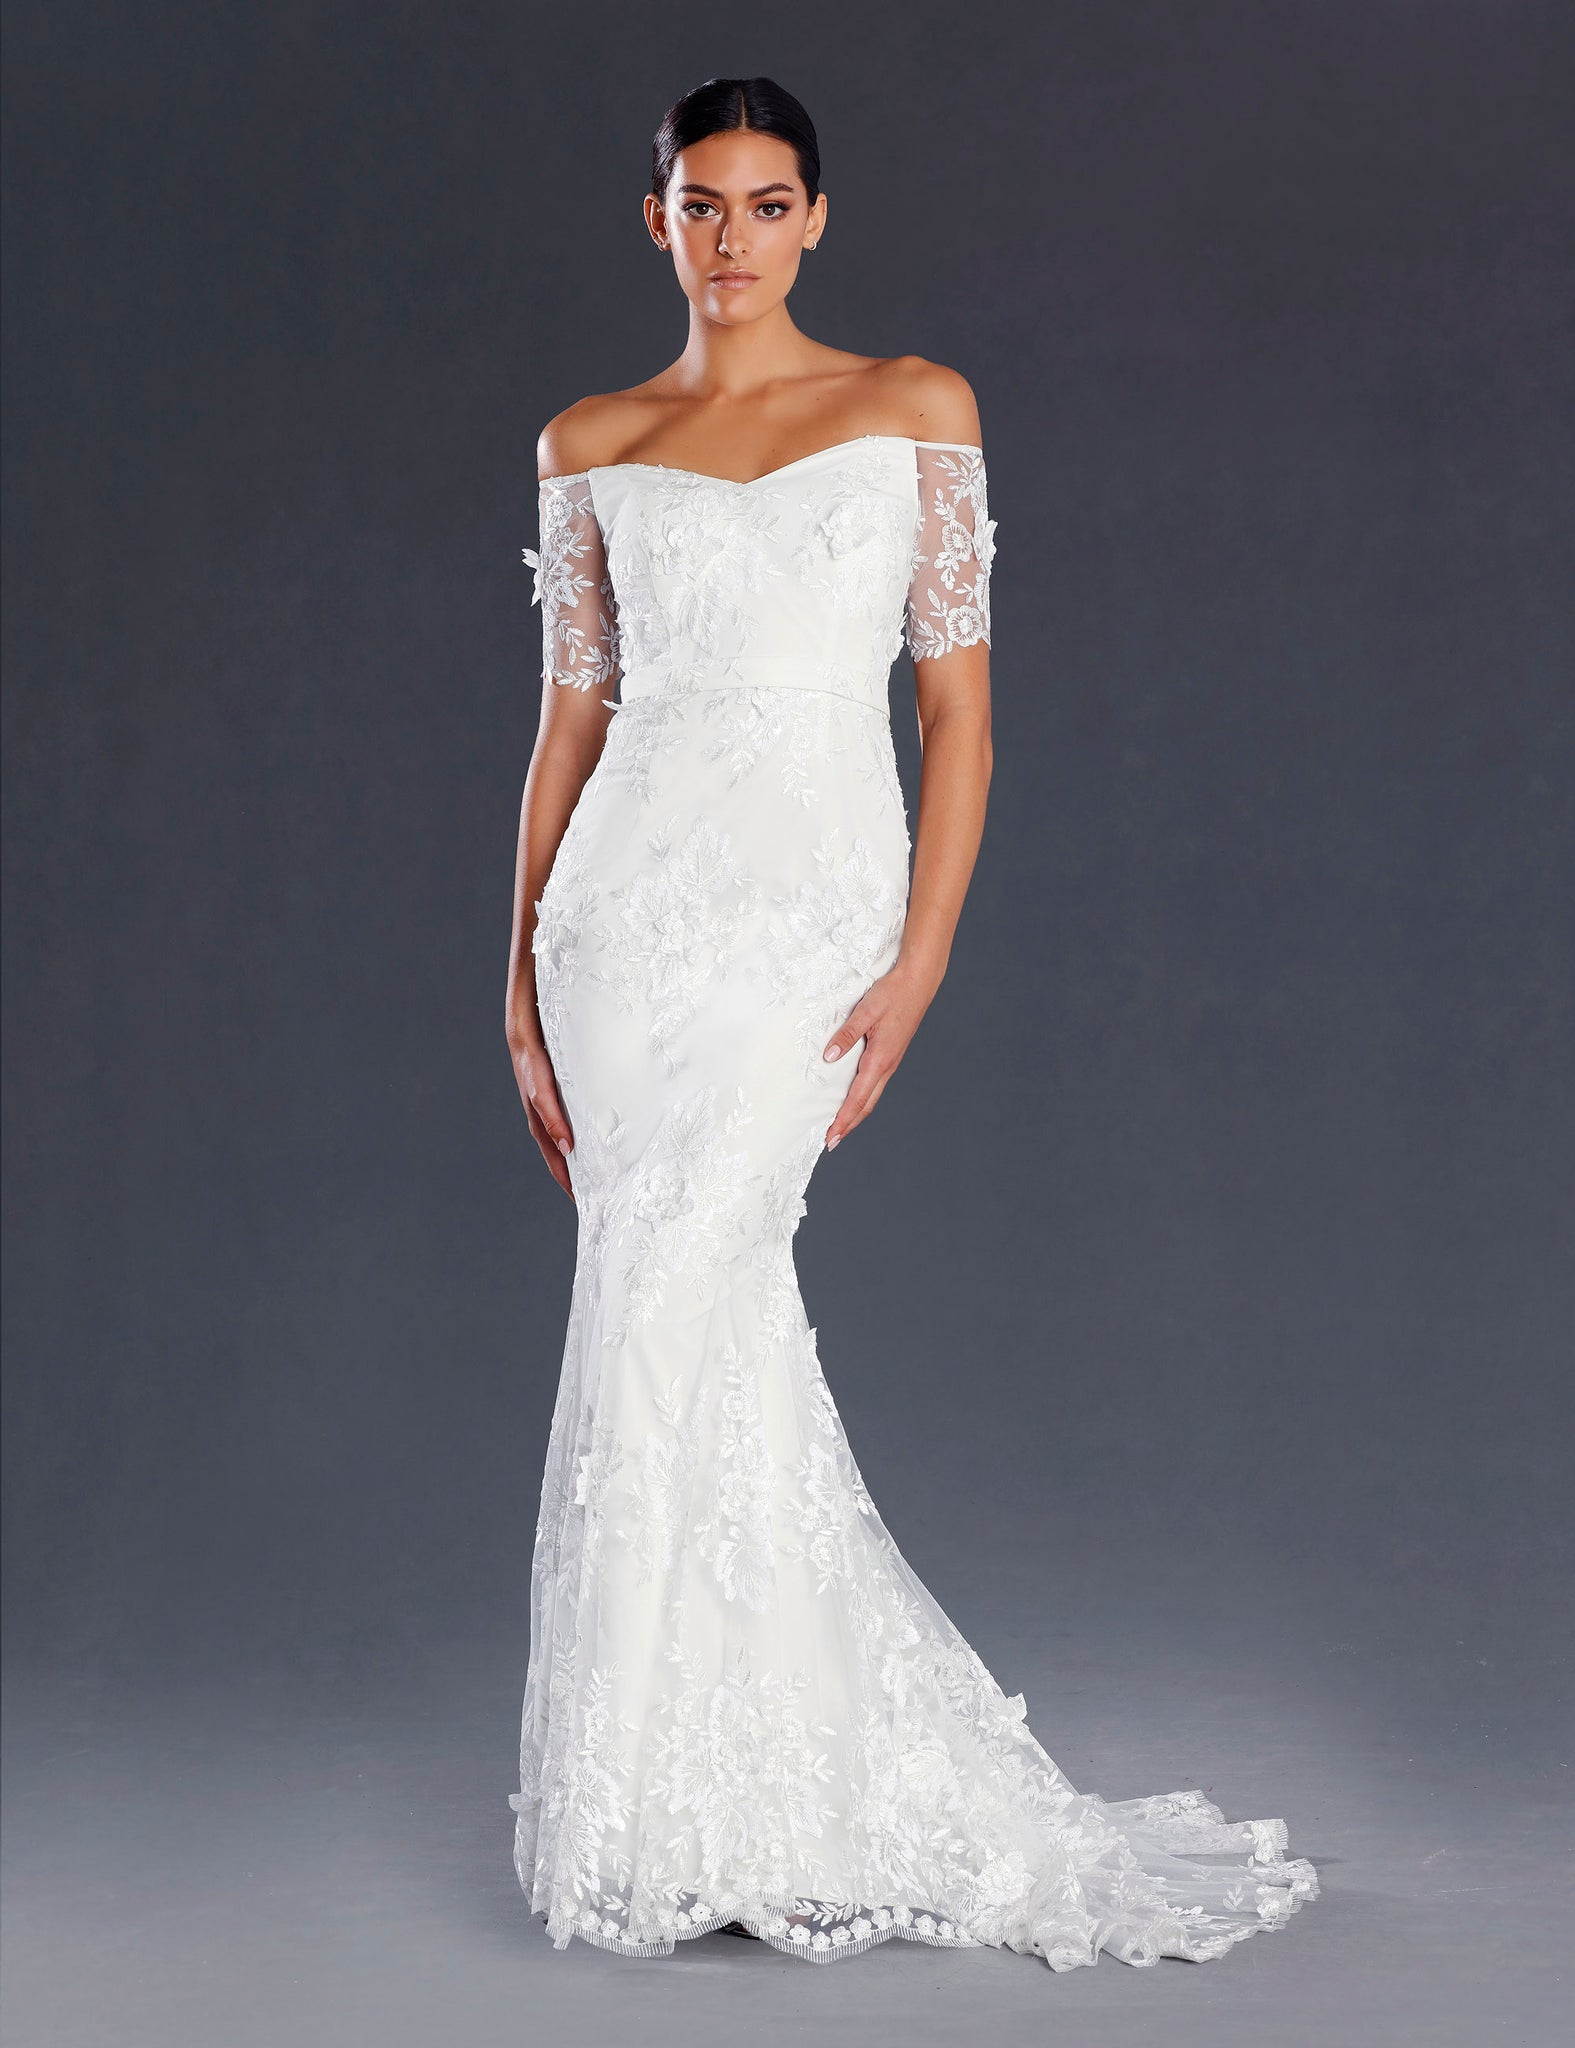 Garden Wedding Gown by Jadore   Simple Lace Bridal Dress JX20 ...